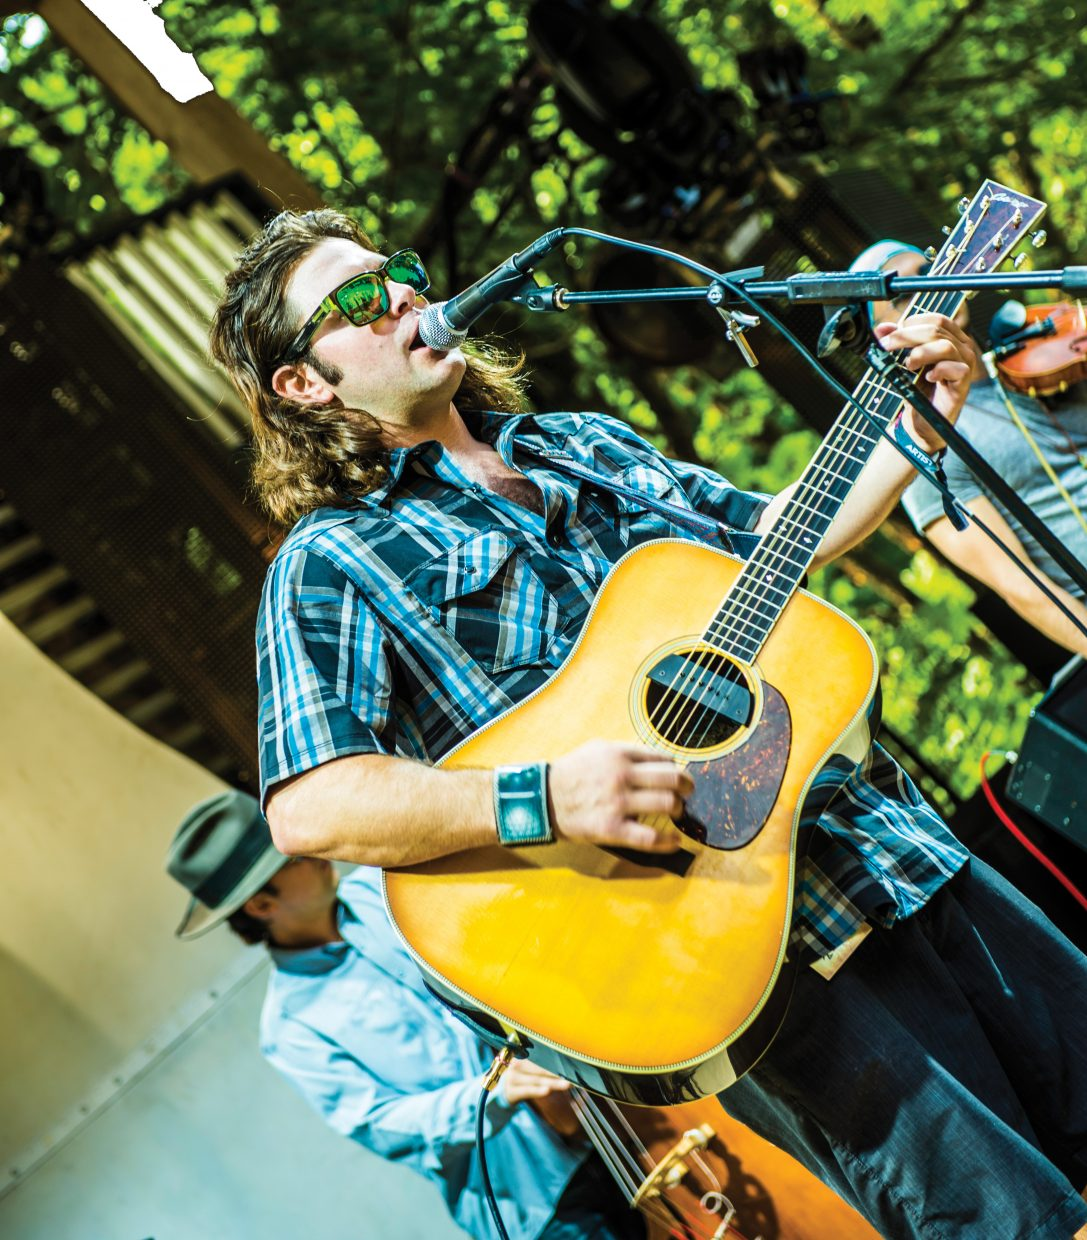 The Drunken Hearts are set to play YarmonyGrass, a four-day music festival at State Bridge beginning this weekend. The festival also features Railroad Earth, Lukas Nelson and Promise of the Real, members of String Cheese Incident and more.